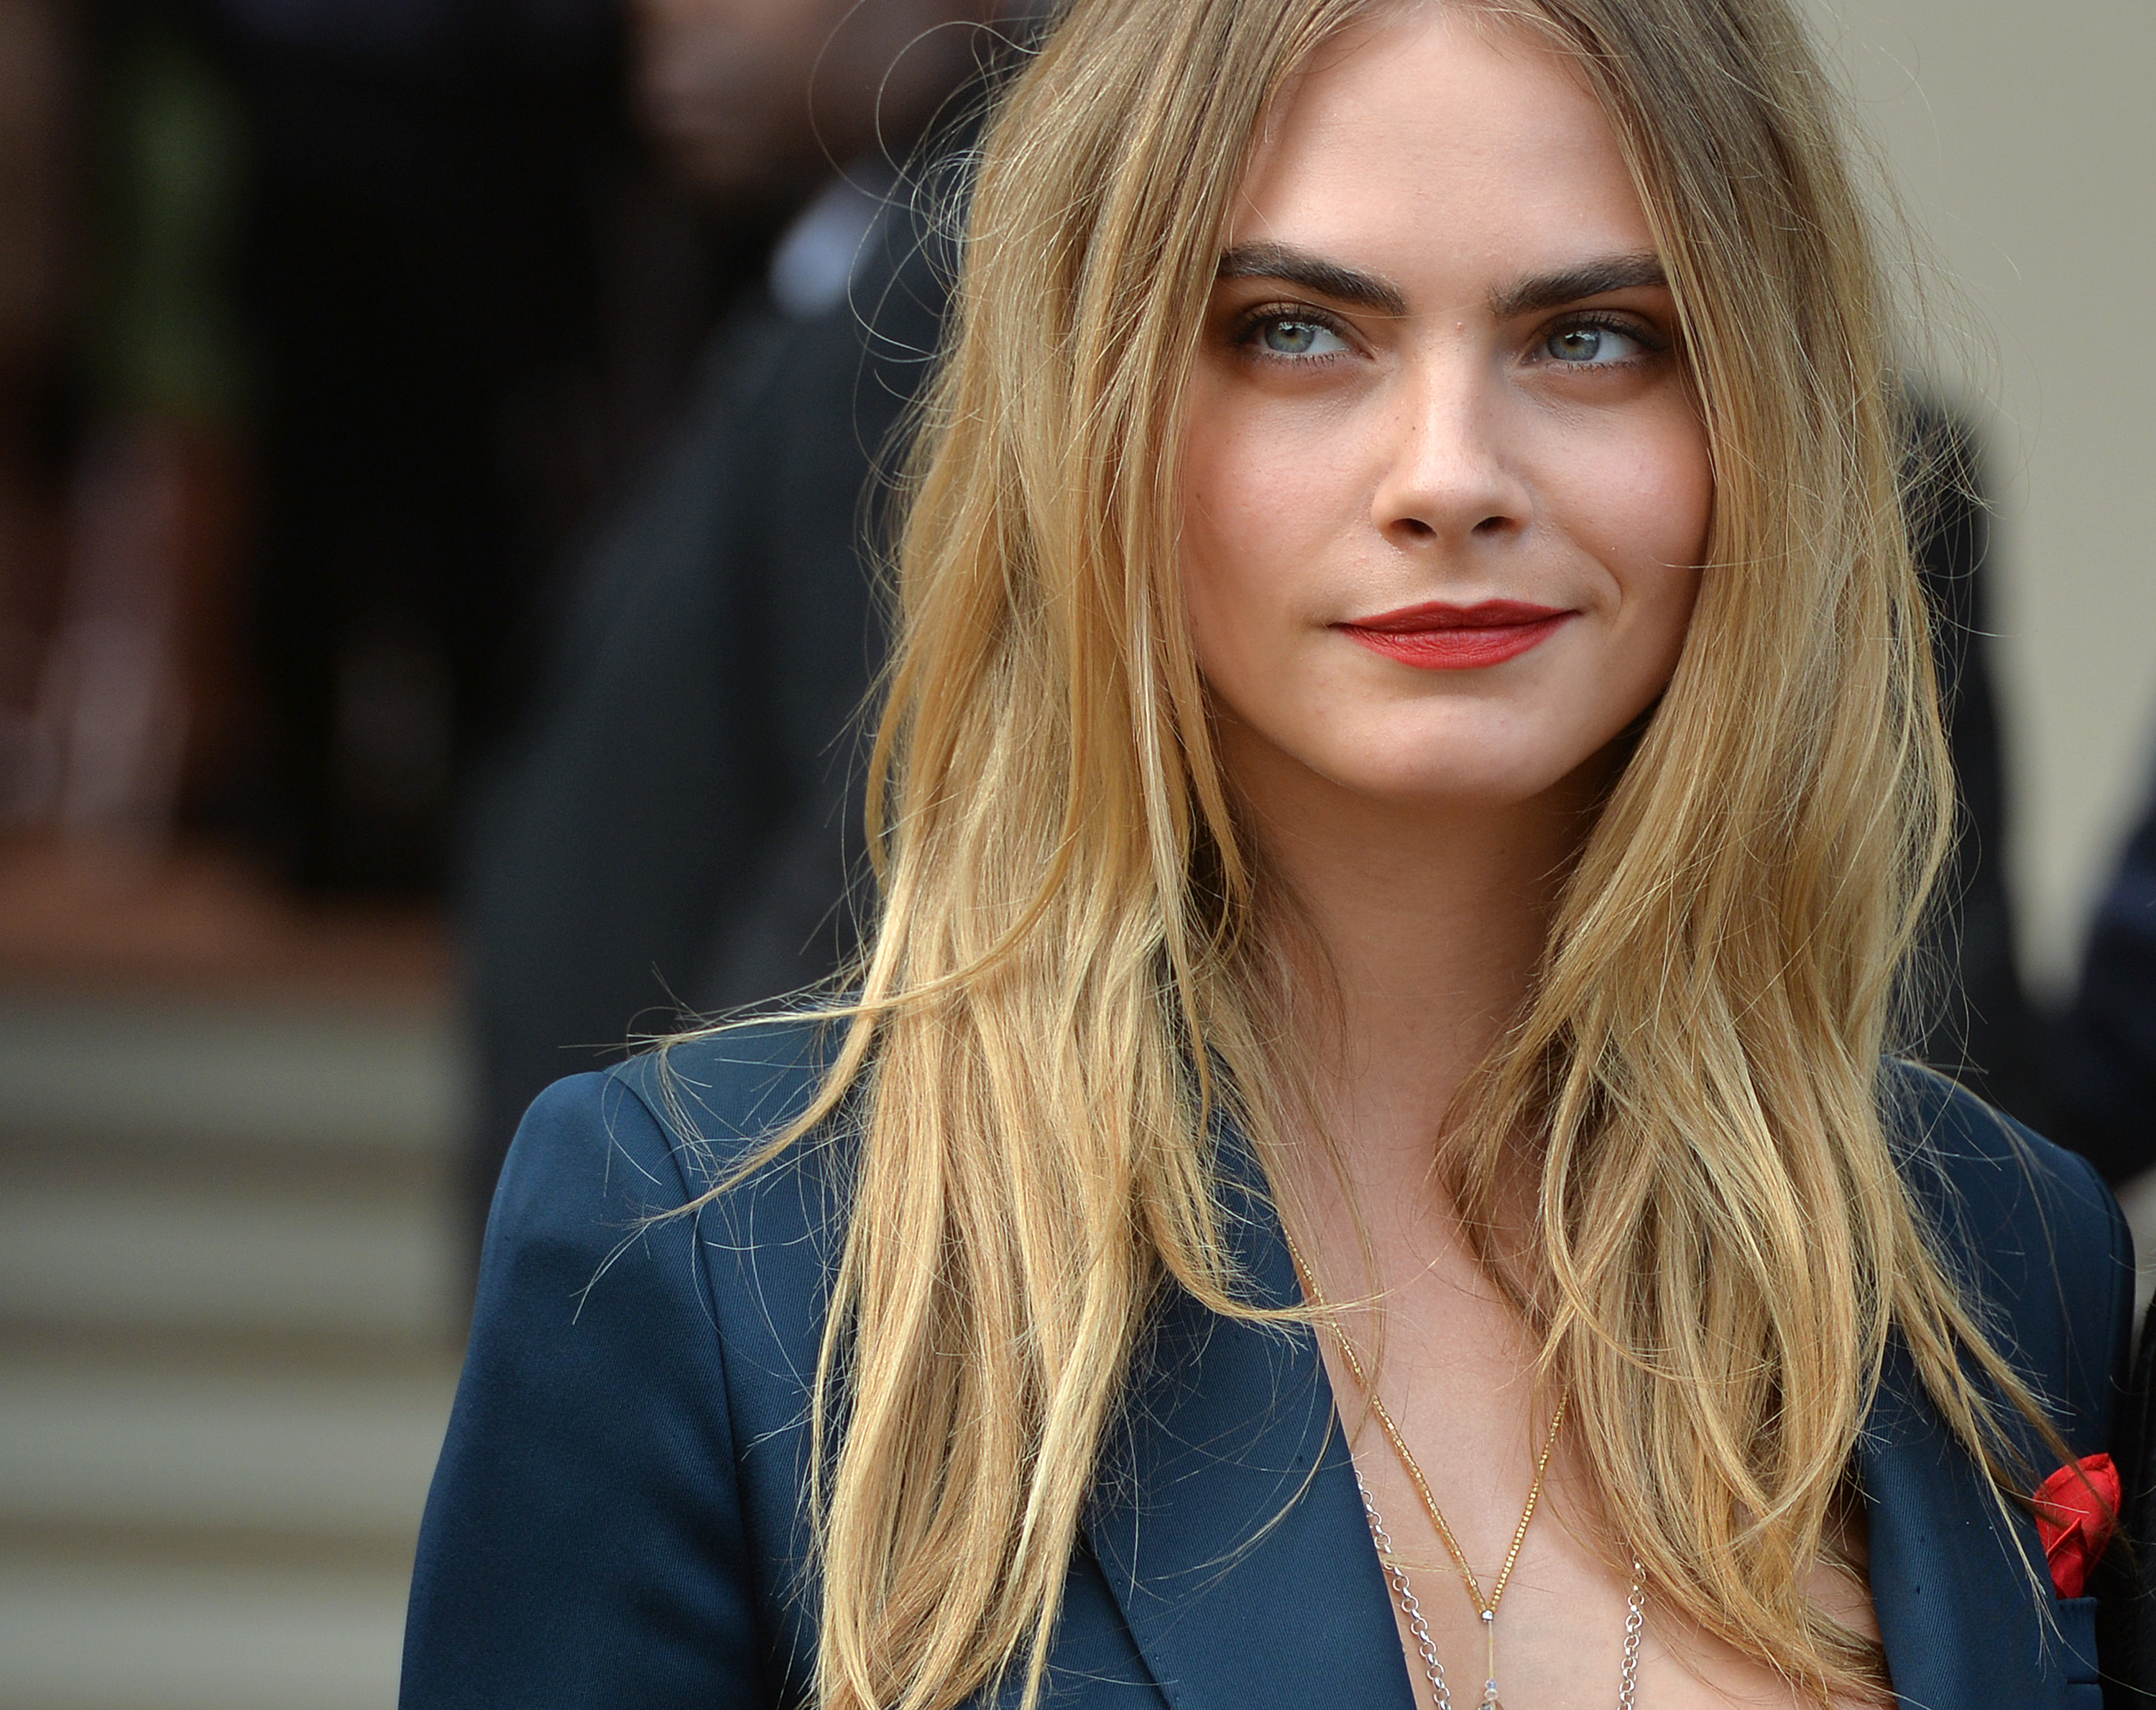 Pics Cara Delevigne naked (57 photos), Topless, Fappening, Boobs, swimsuit 2019